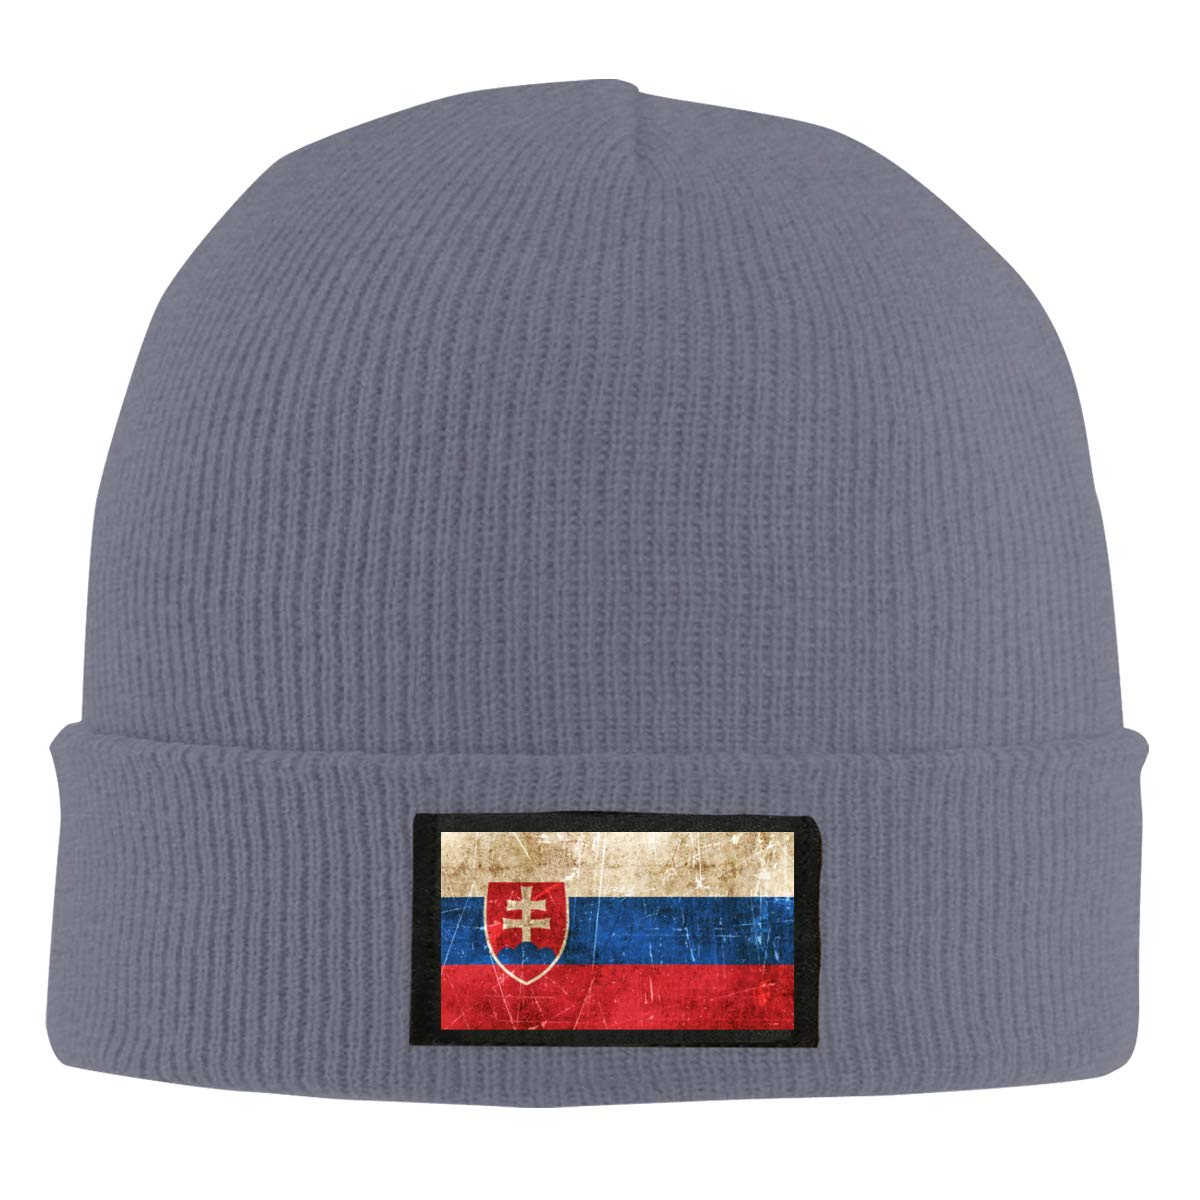 Vintage Aged and Scratched Slovakian Flag Unisex Warm Winter Hat Knit Beanie Skull Cap Cuff Beanie Hat Winter Hats